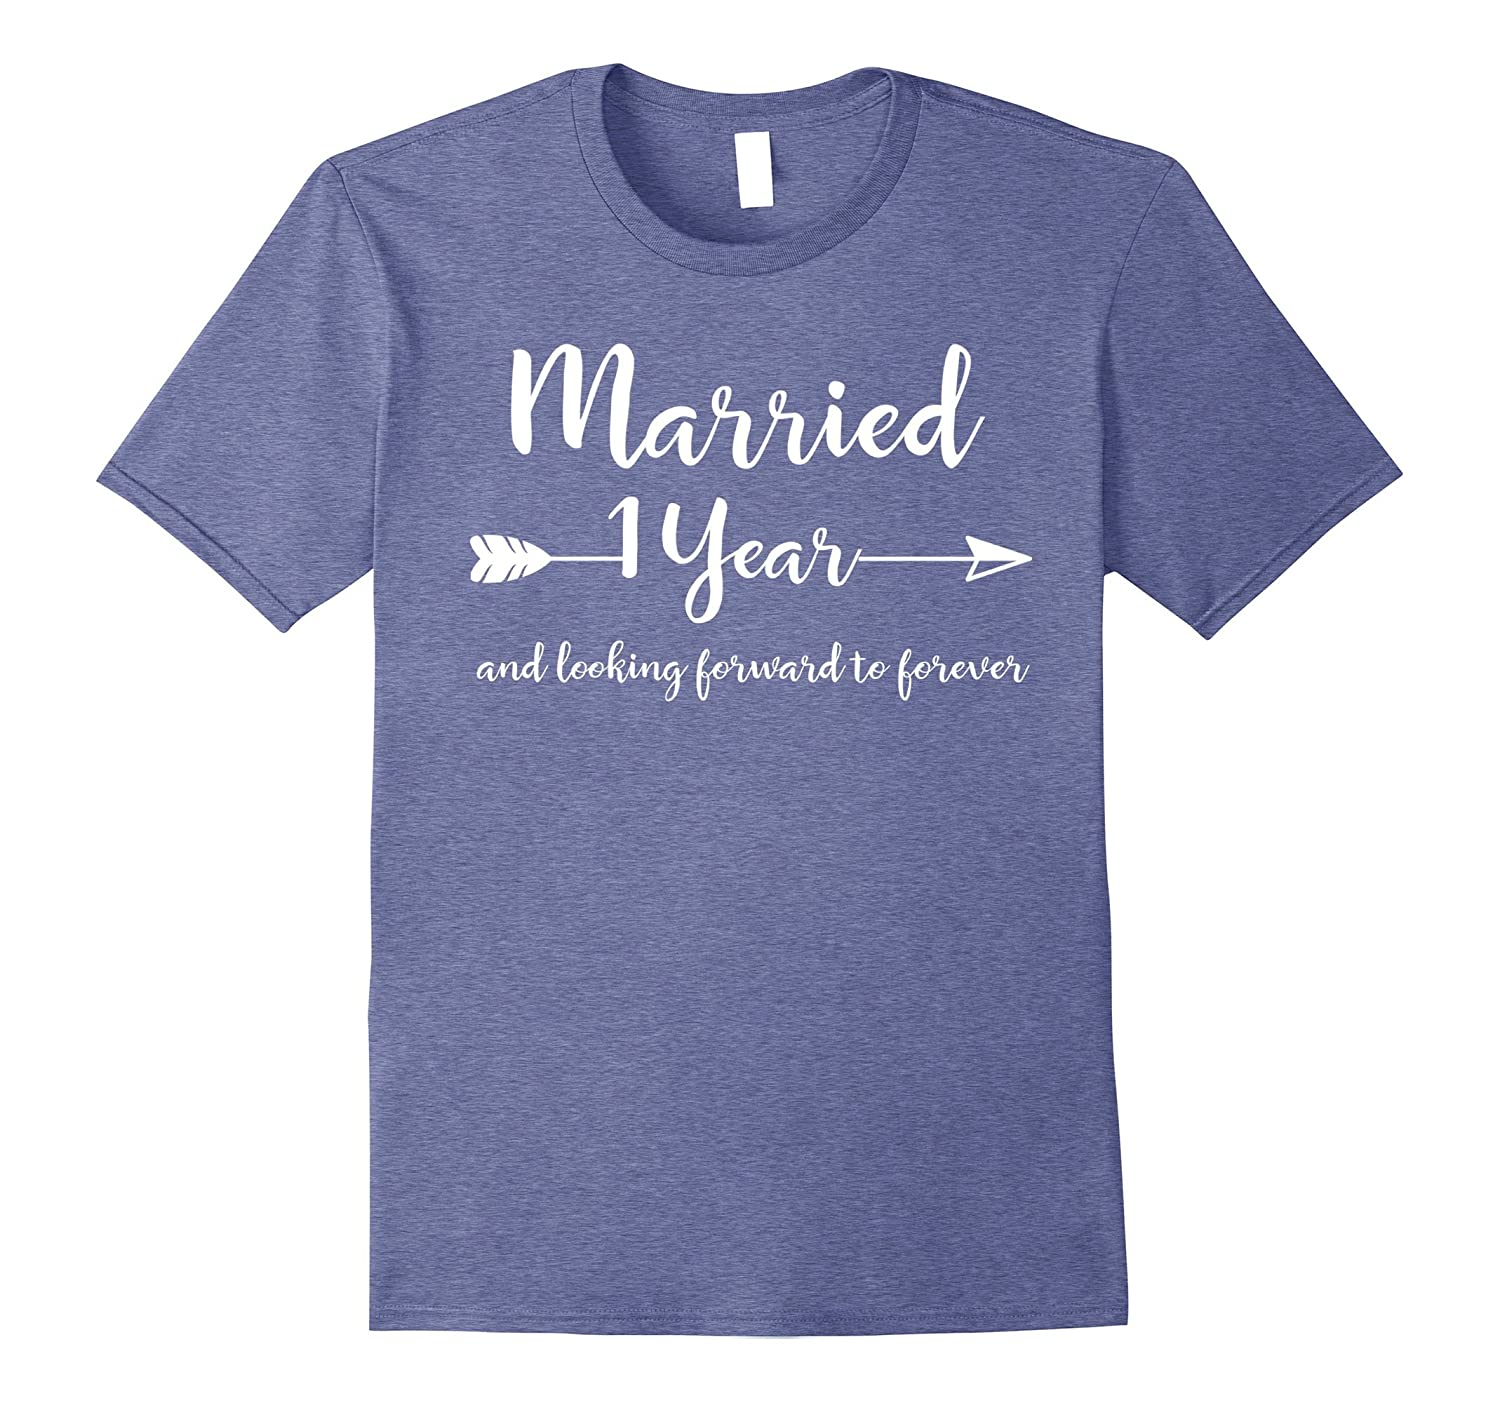 Wedding Anniversary Gifts For Him: First Wedding Anniversary Gifts For Him Her Couples T